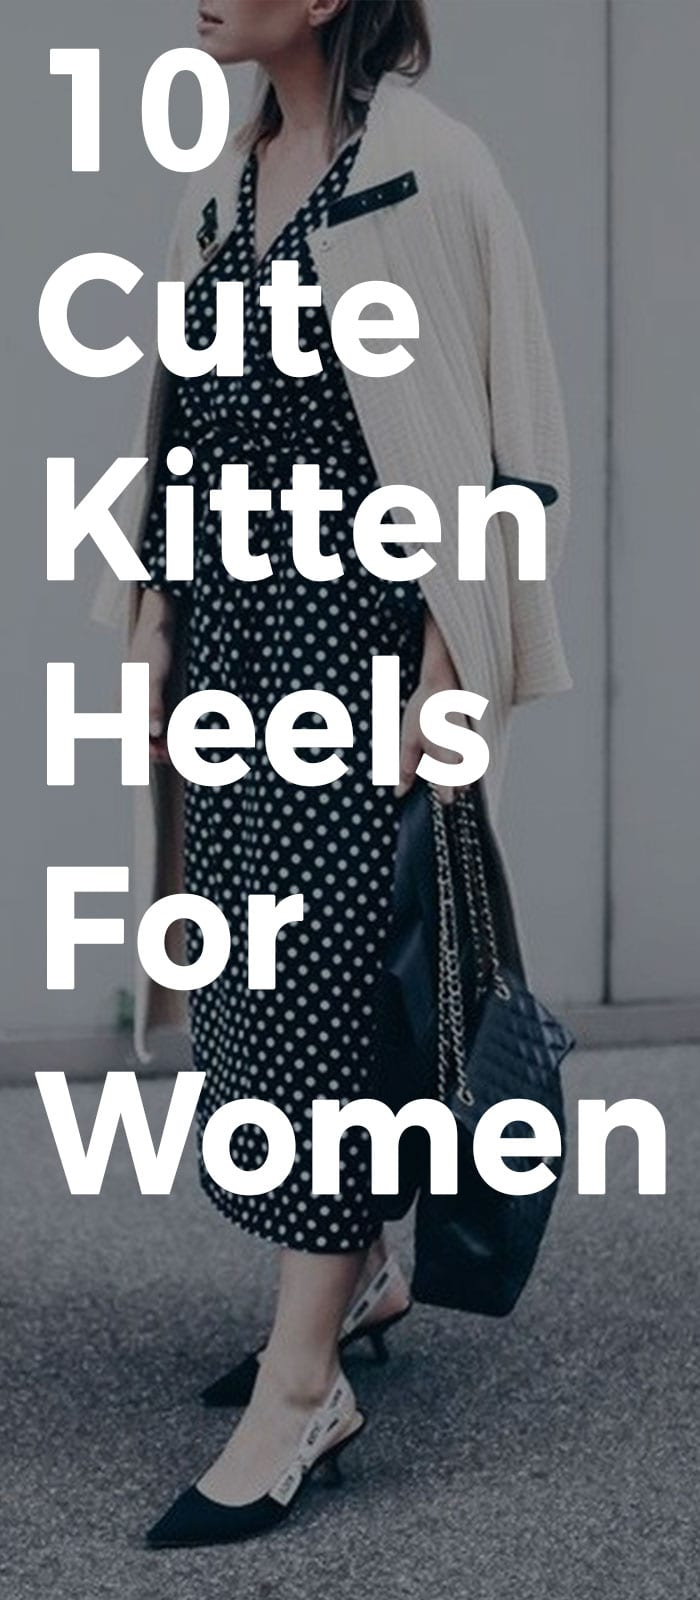 10 Cute Kitten Heels That You Can Pair With Any Outfits.